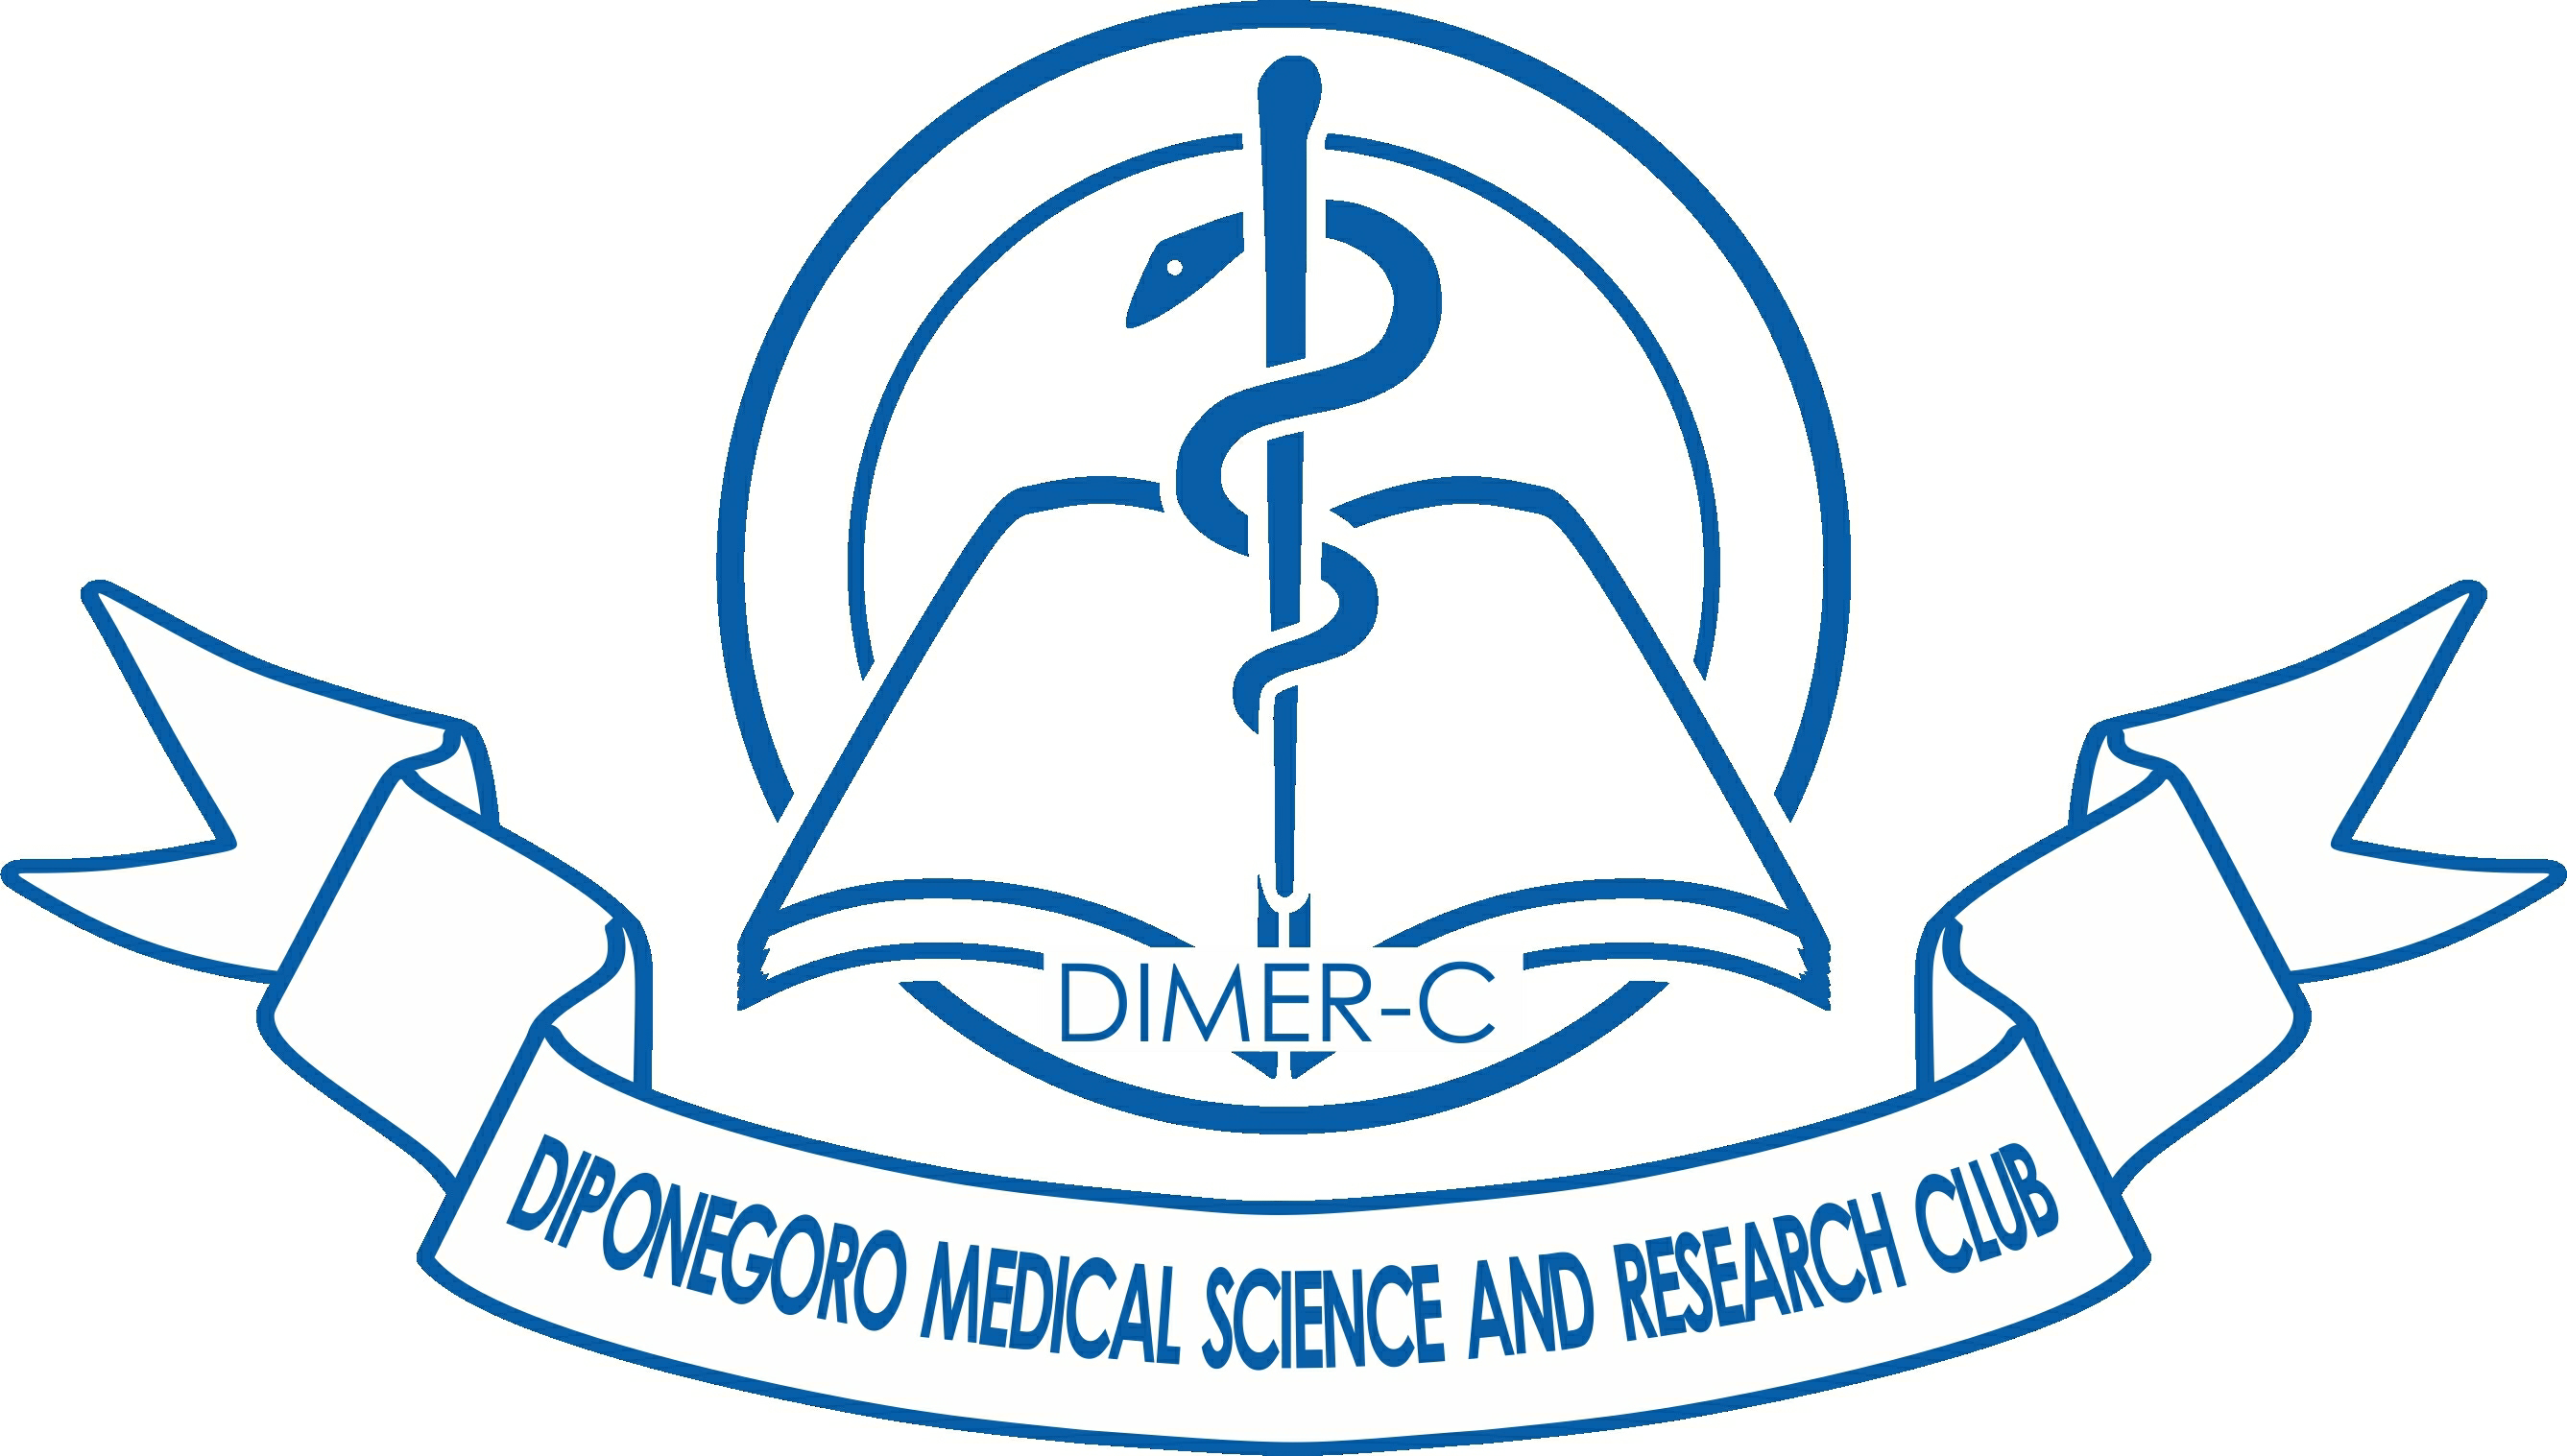 Diponegoro Medical Science and Research Club (DIMER-C) FK UNDIP